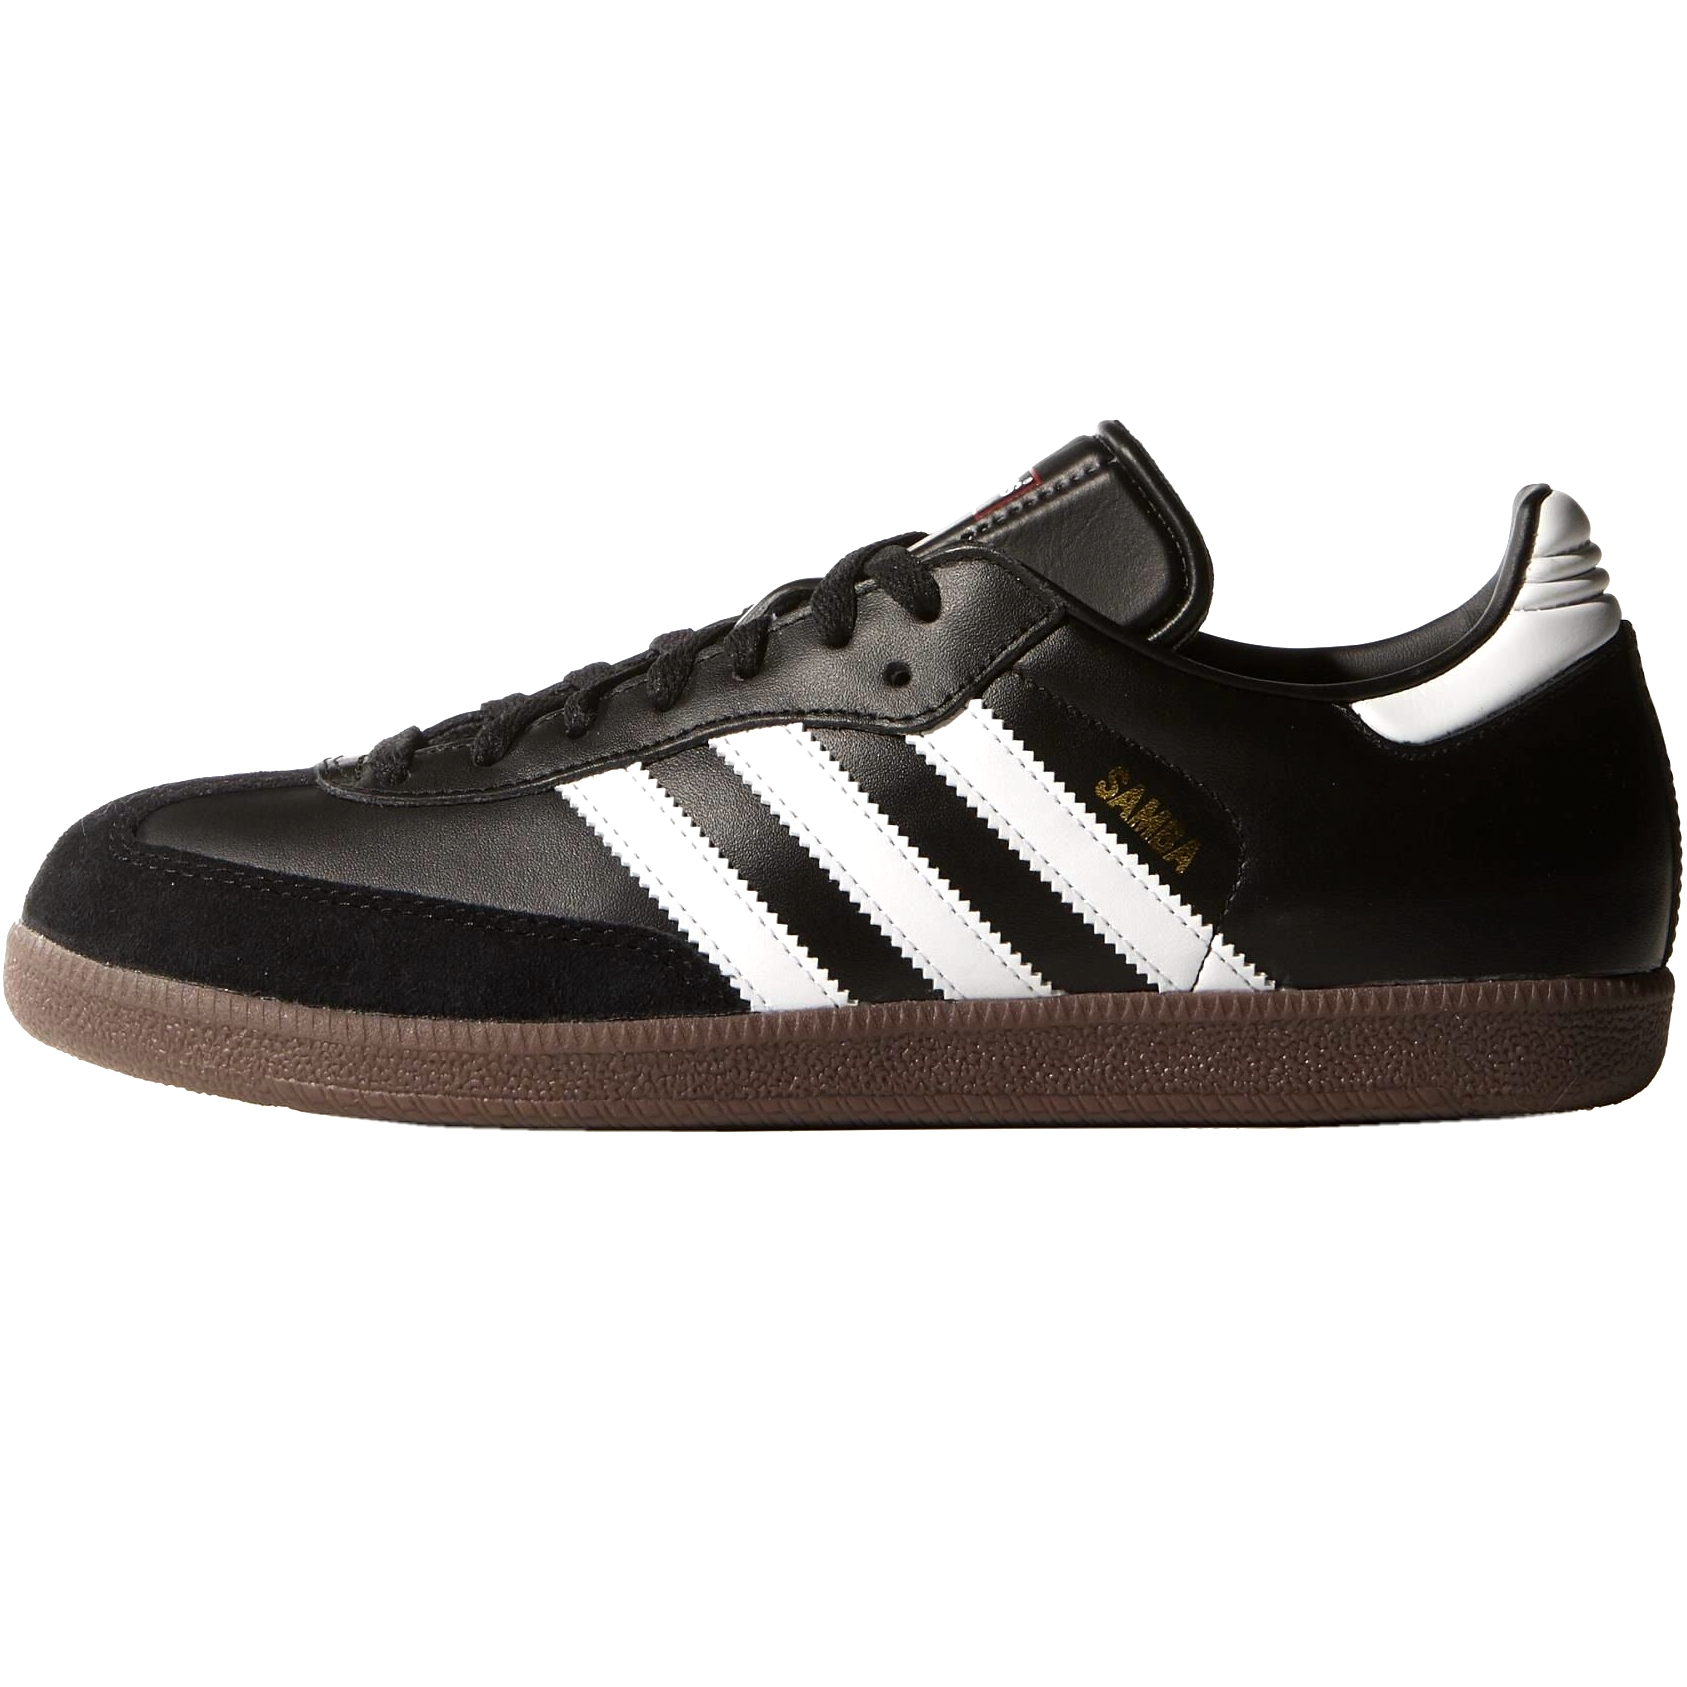 adidas samba classic schuhe turnschuhe sneaker herren. Black Bedroom Furniture Sets. Home Design Ideas